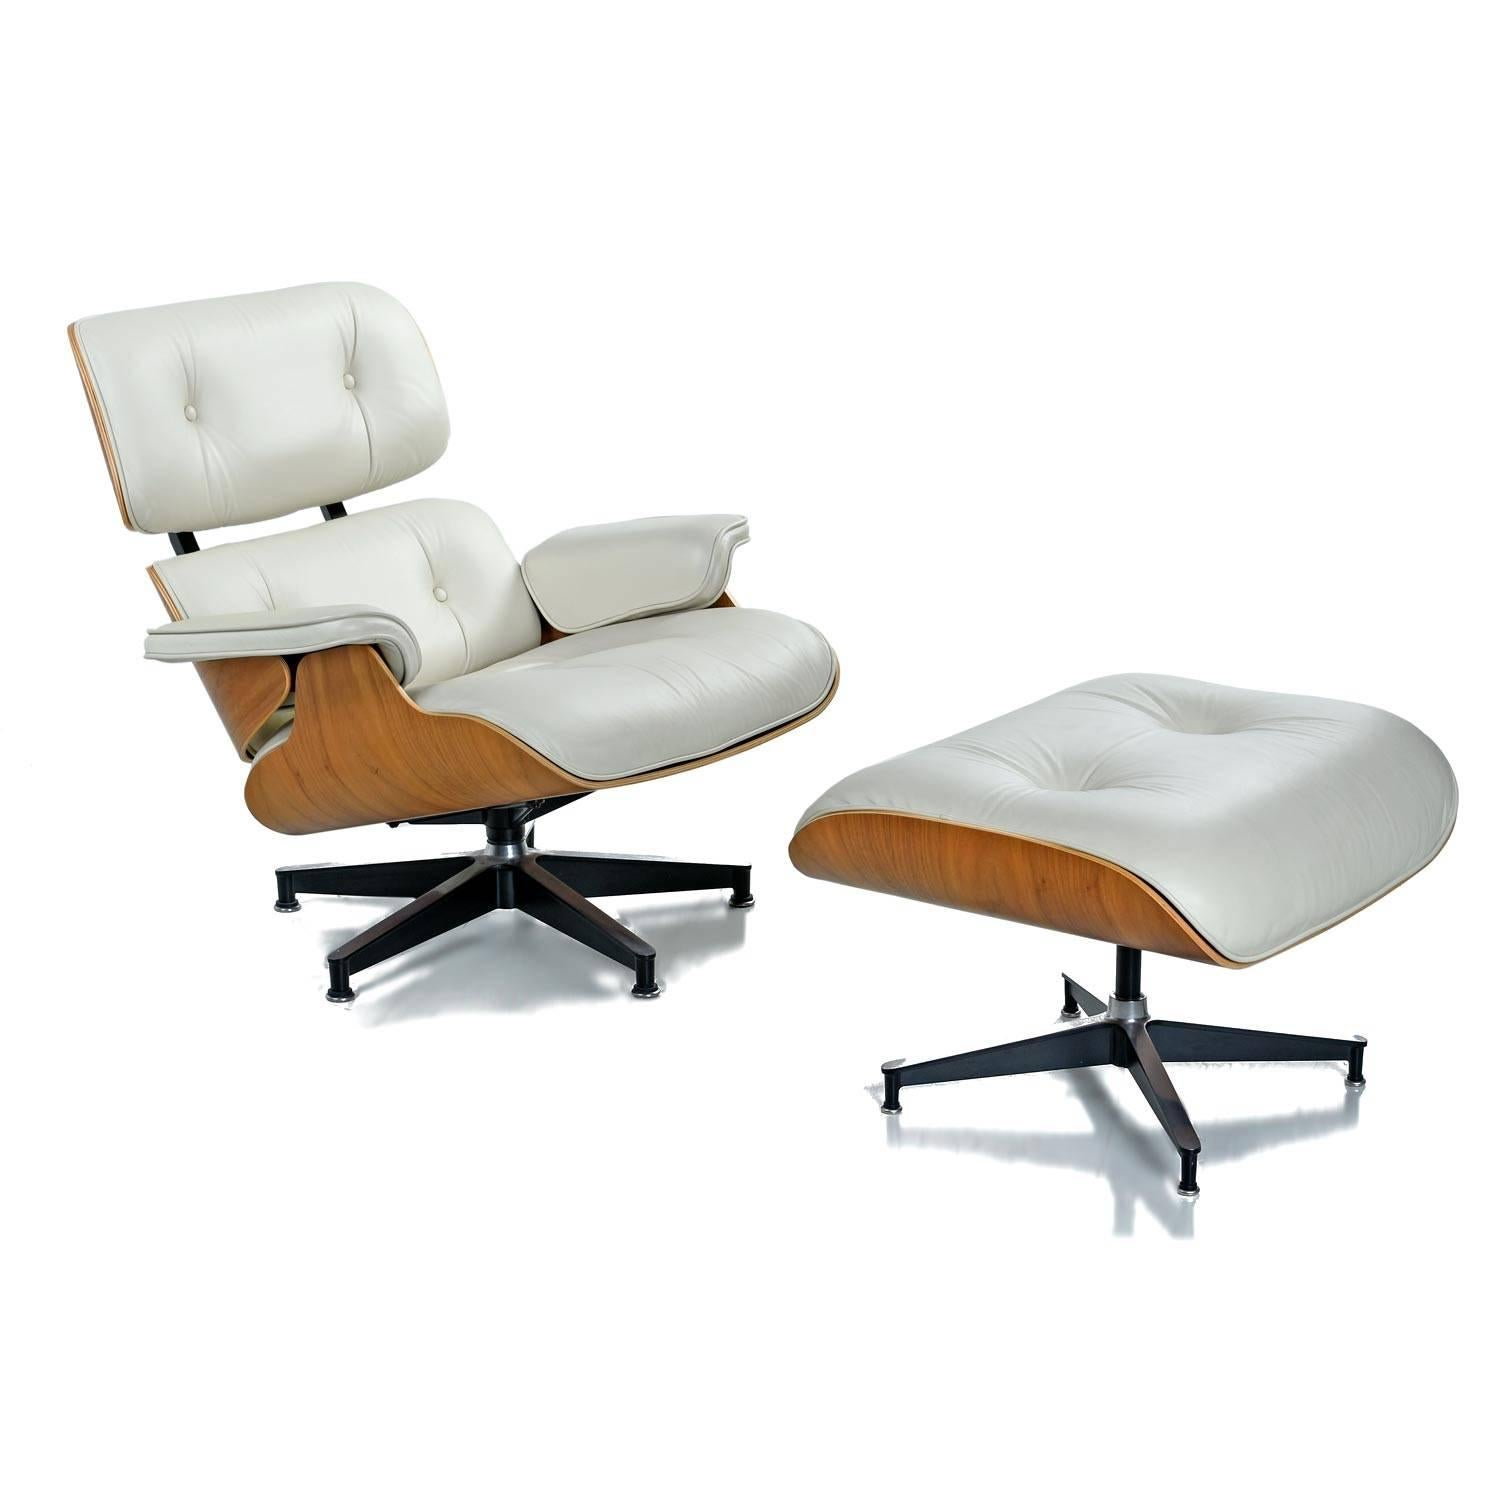 Beau Iconic Mid Century Modern Herman Miller Eames Chair. Ivory Genuine Leather  With Walnut Shell